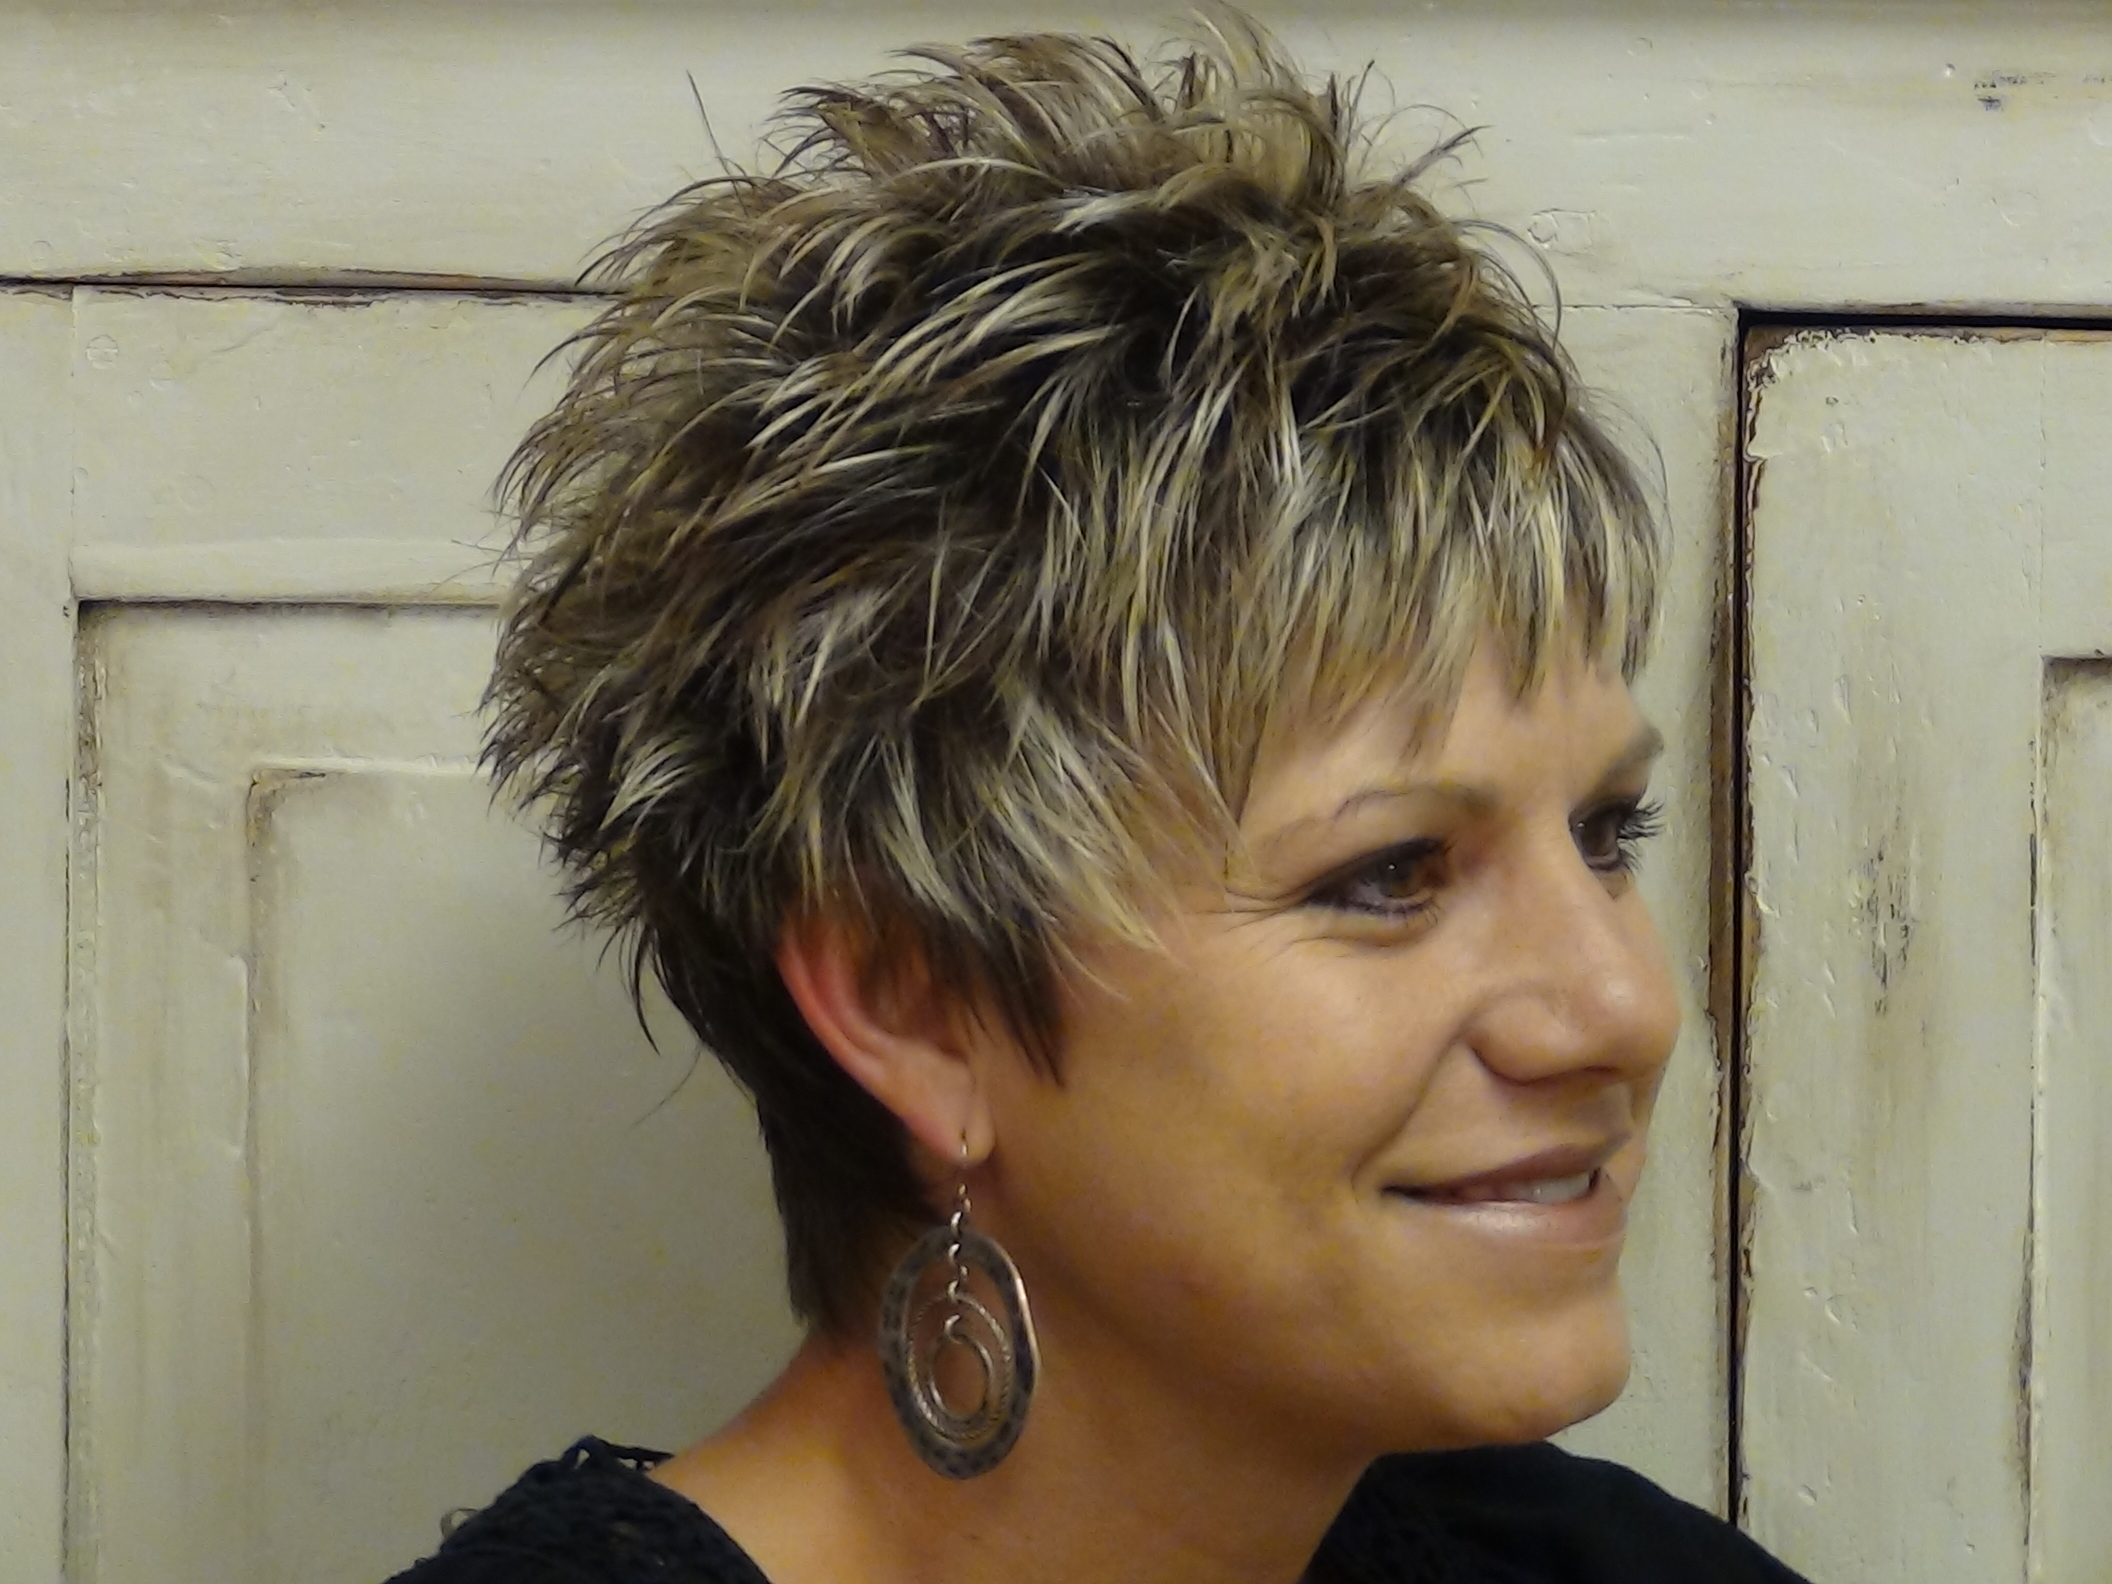 Short Hairstyles For 50 Year Old – Hairstyle For Women & Man Intended For Short Hair 50 Year Old Woman (View 4 of 25)